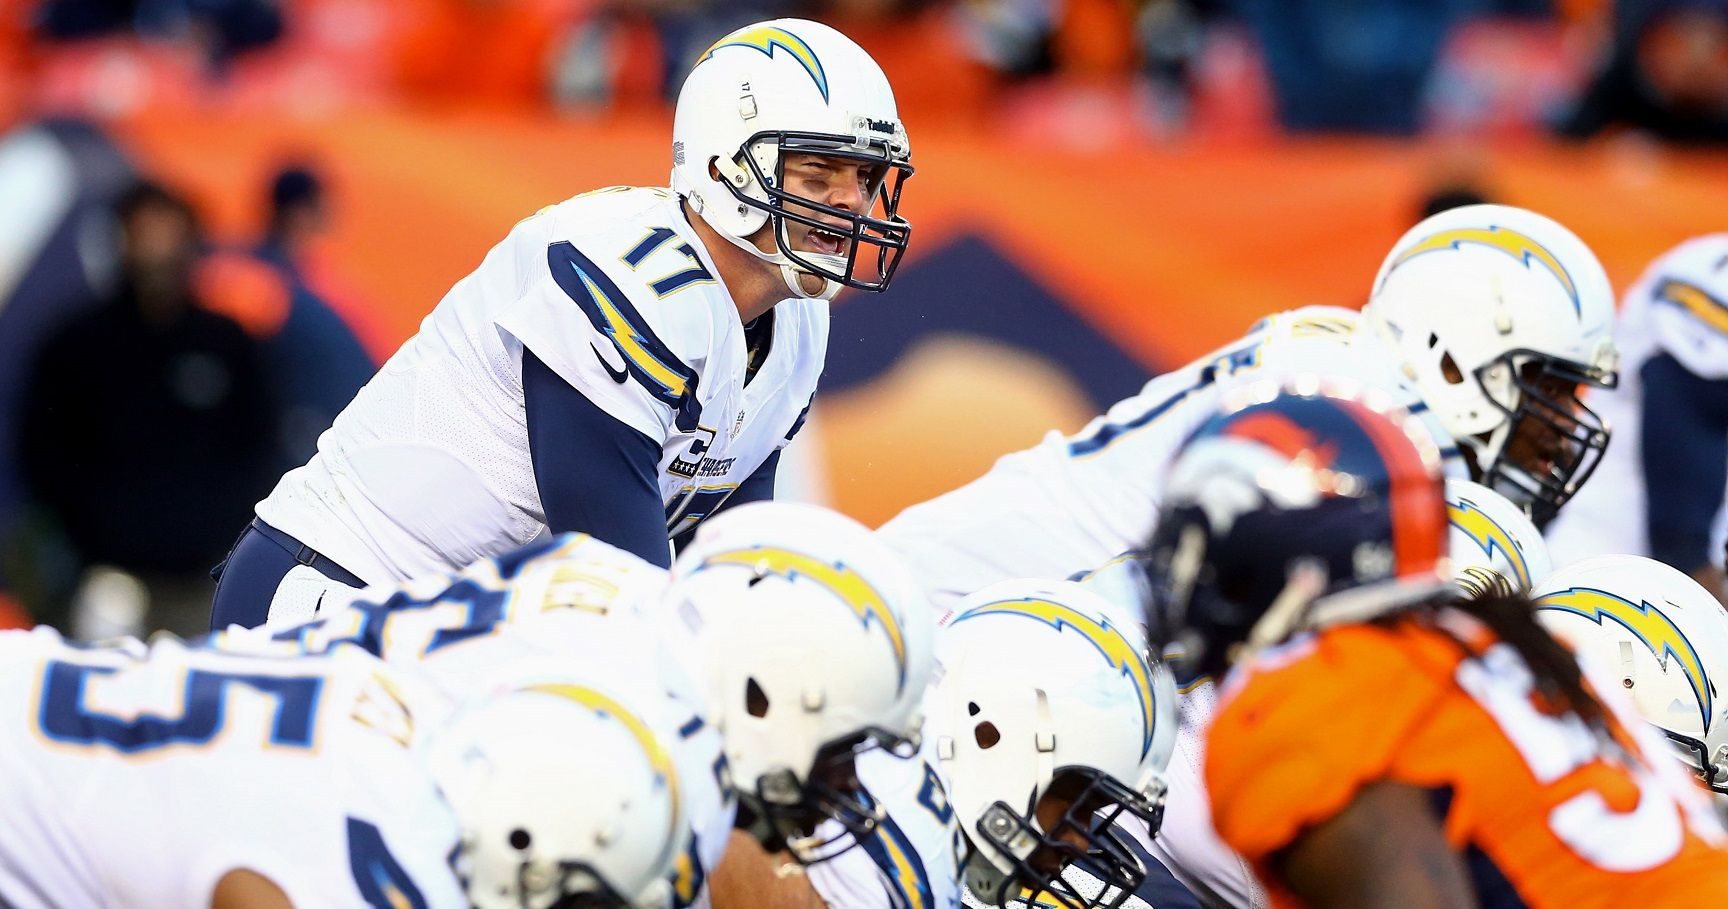 The Nfl S Top 5 Pretenders And Top 5 Contenders For 2014